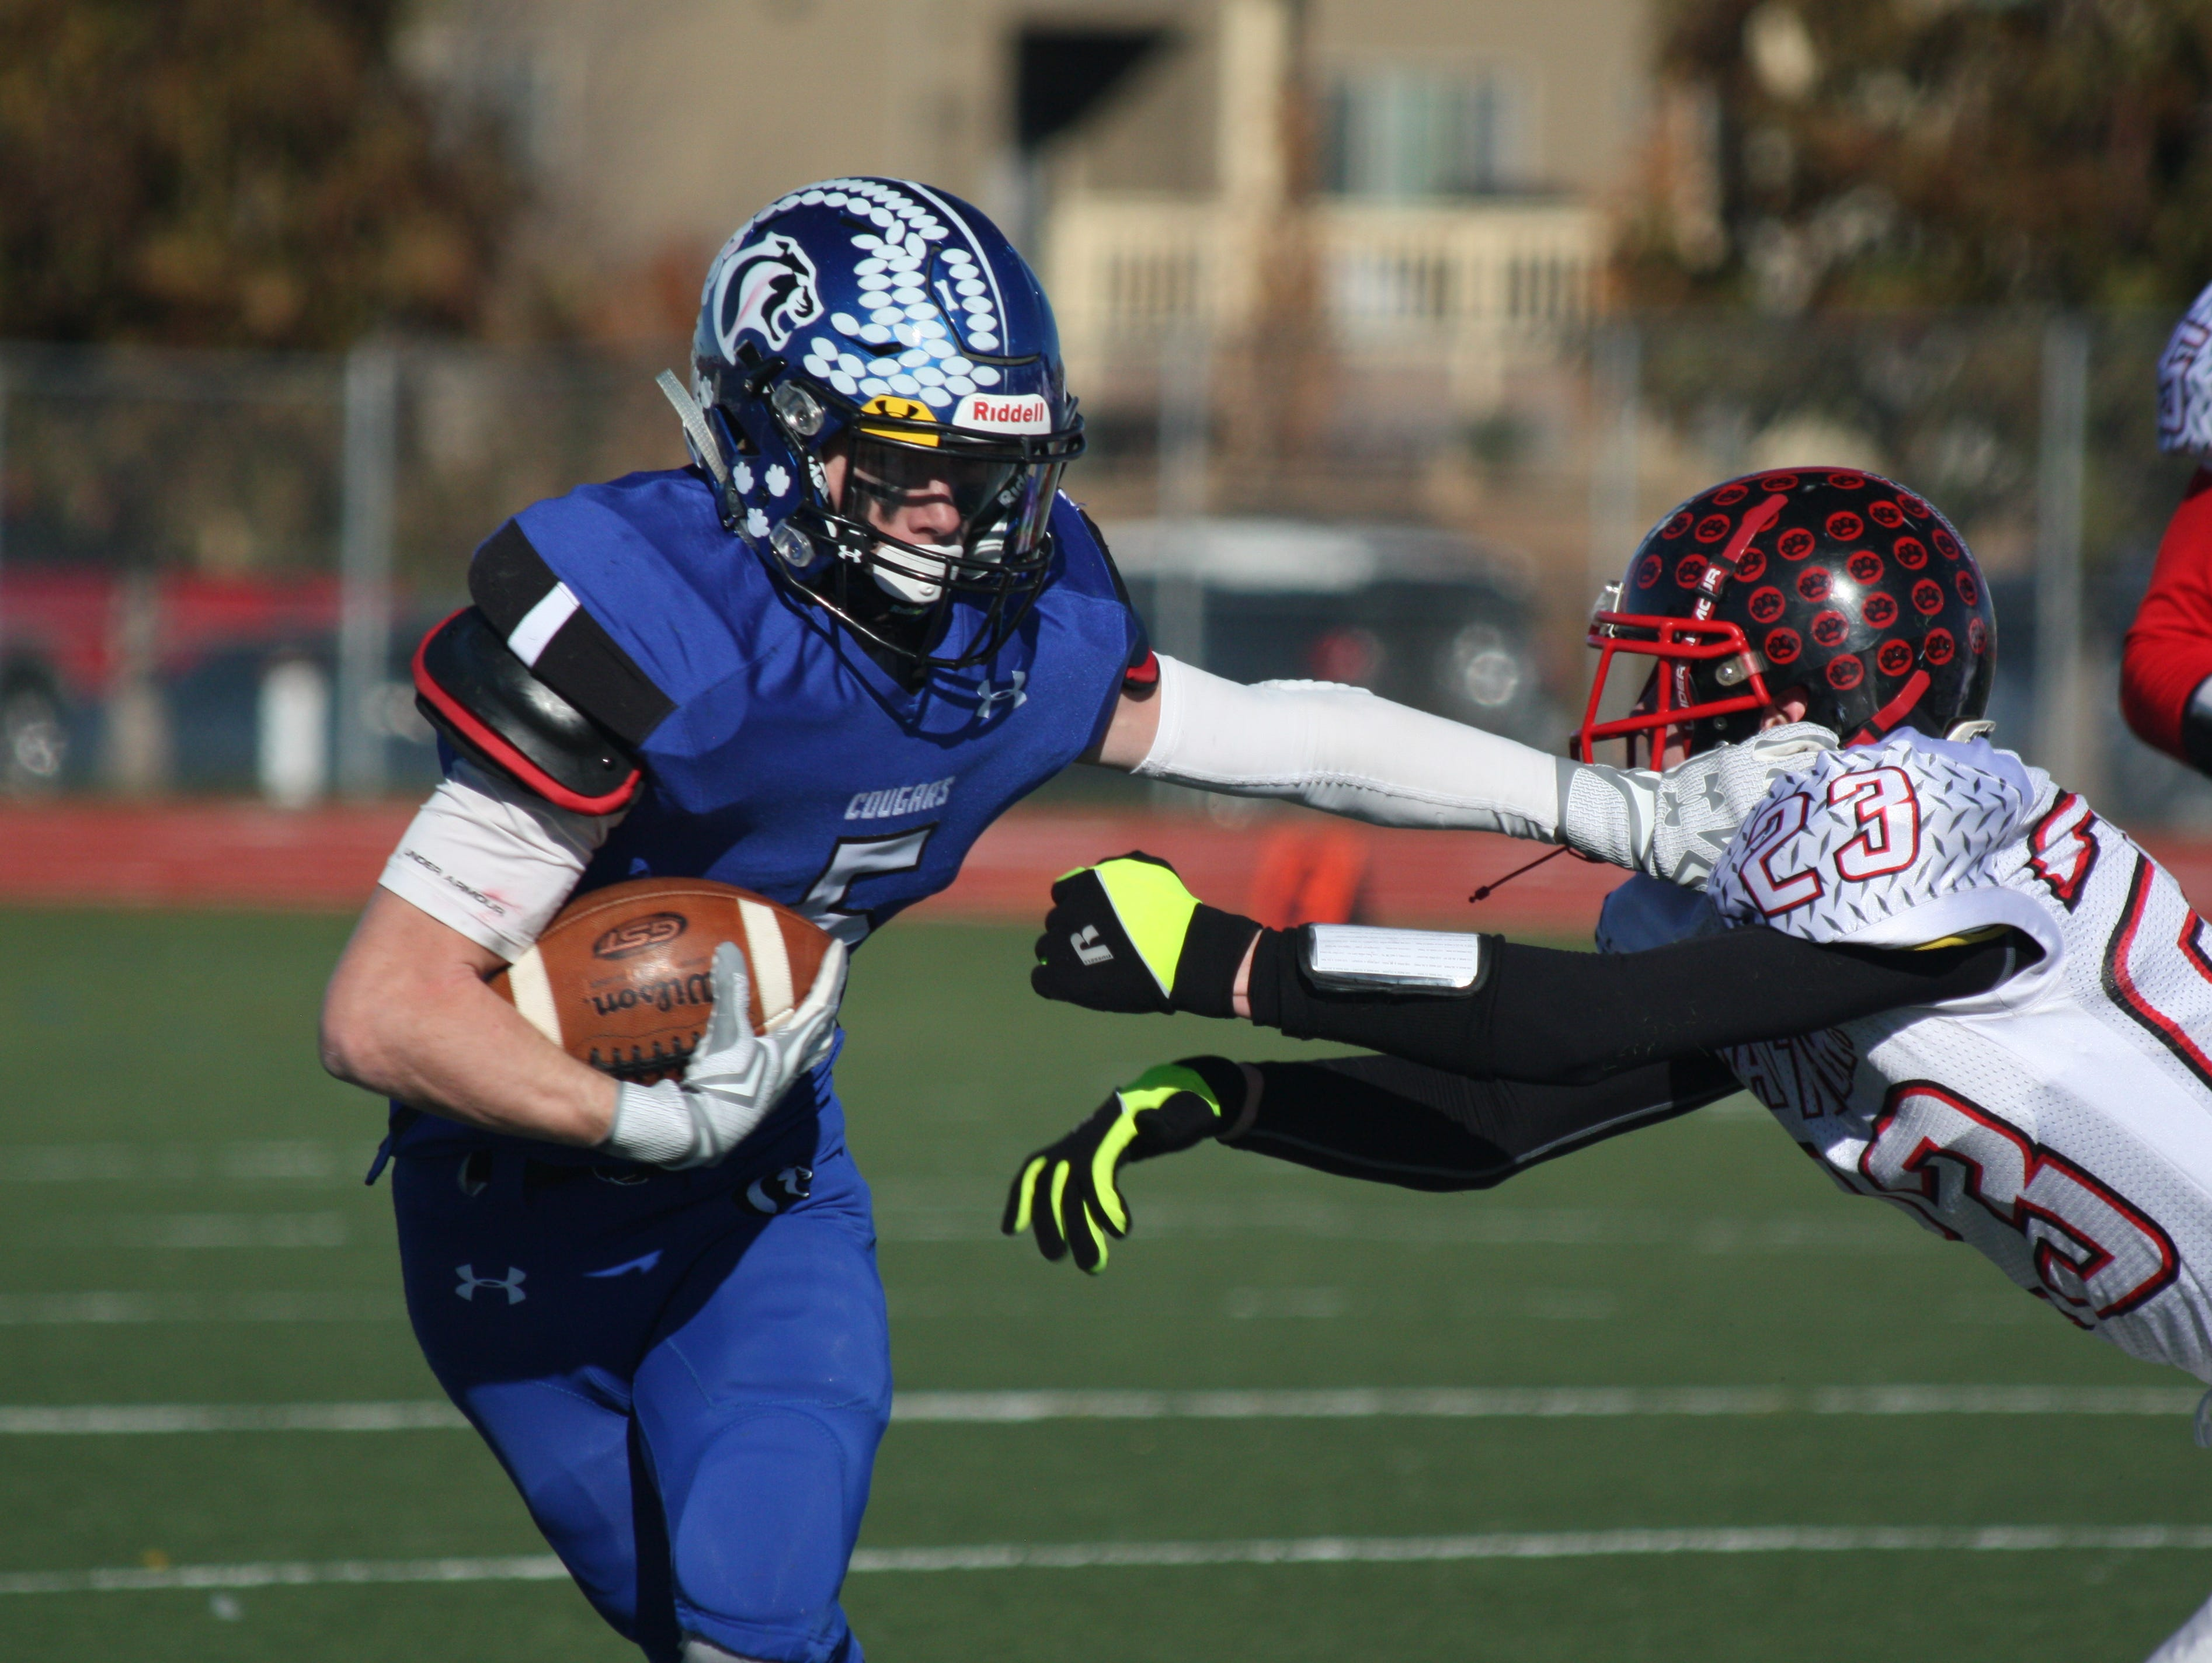 Resurrection Christian's Evan Anderson runs past a Peyton defender during the Cougars' 52-0 first-round playoff win Saturday.